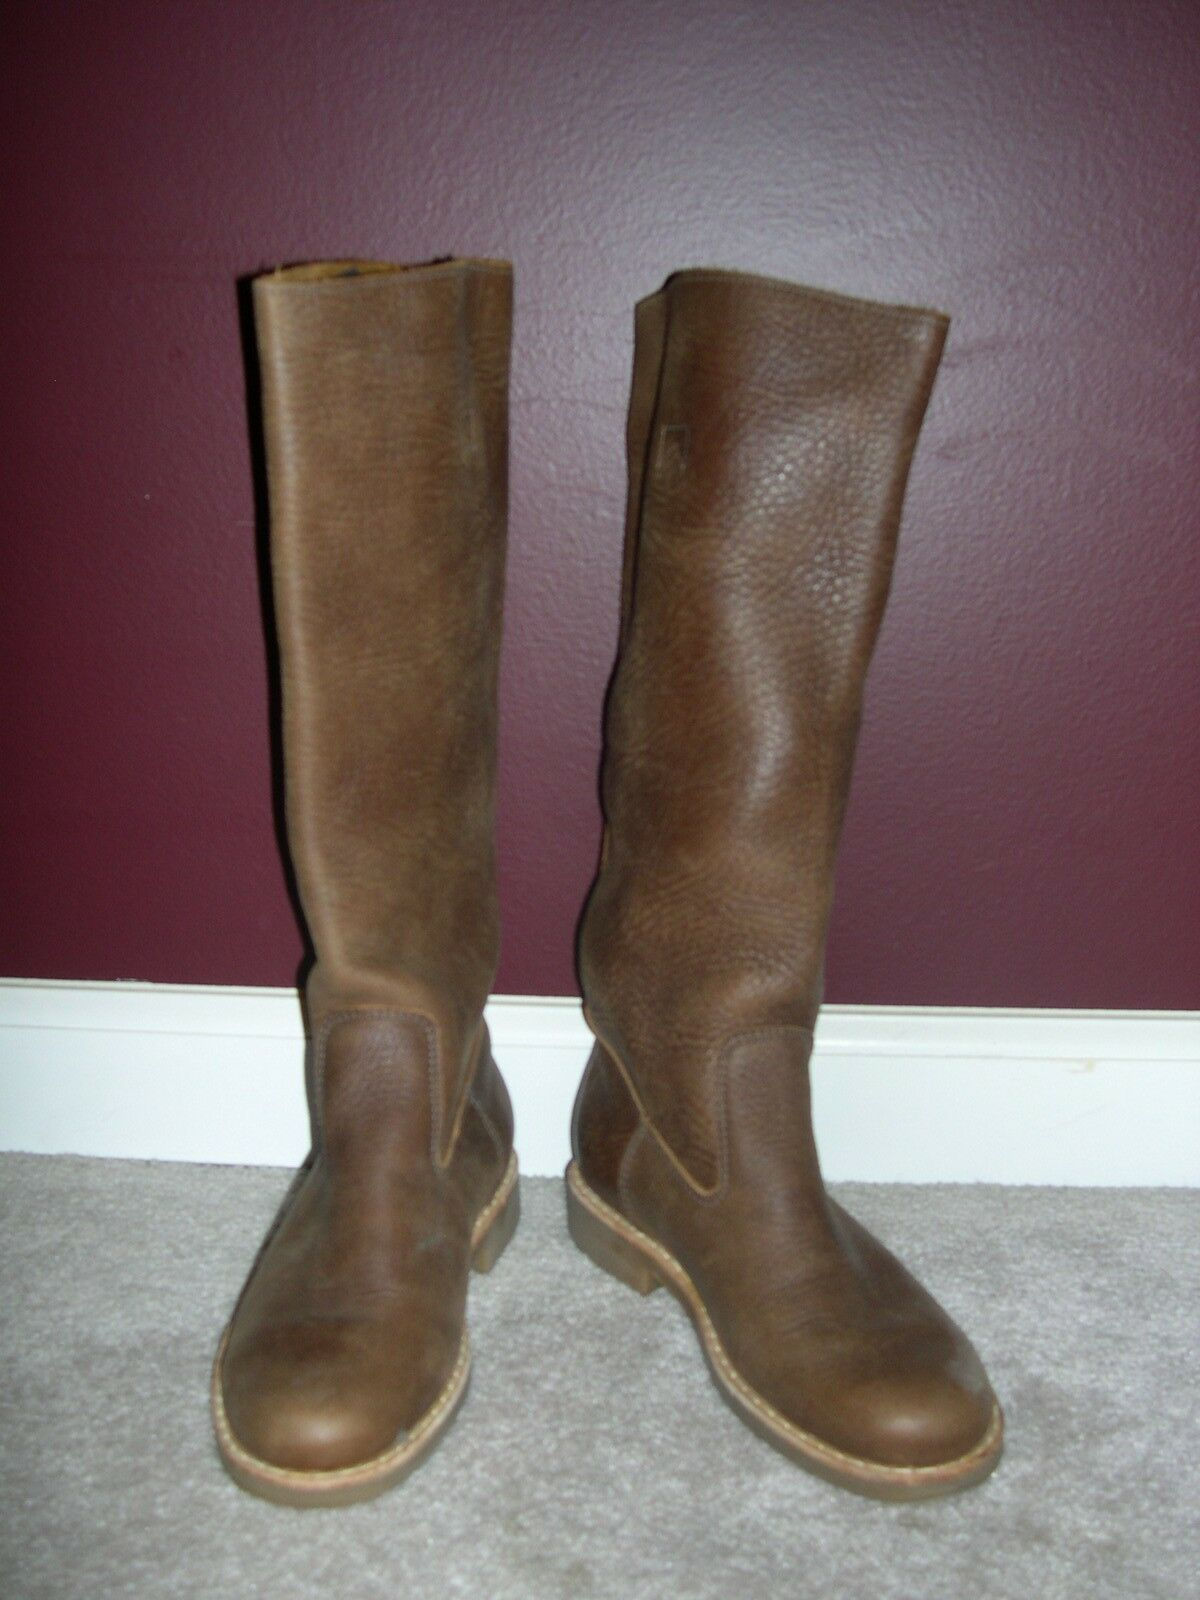 Roots W Russian Vamp Tribe Brown Boots Retail Retail Retail  288 Size 6.5 53514c